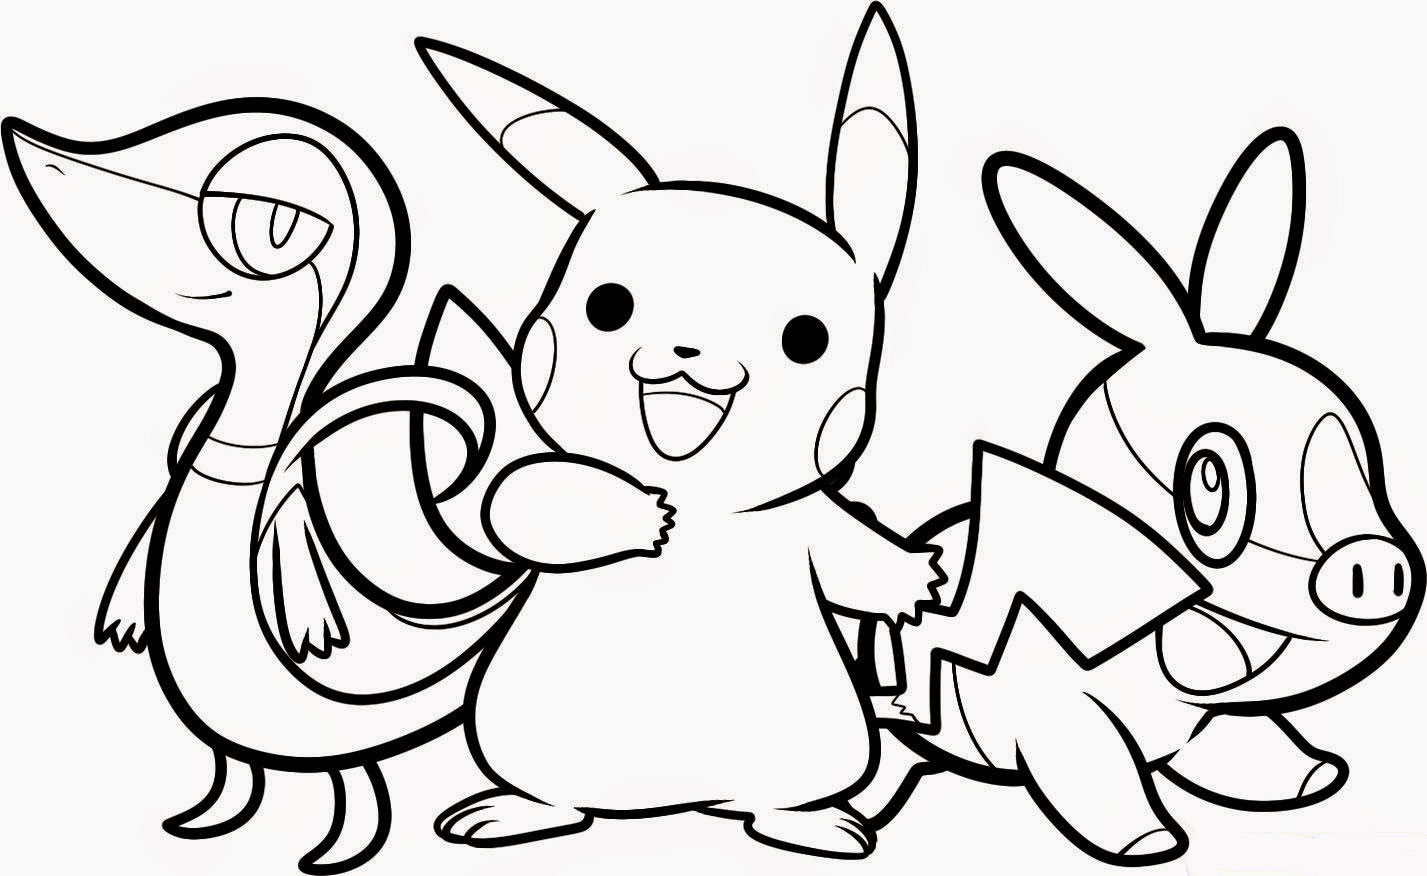 Coloriage images et dessins vacances arts guides - Modele dessin pokemon ...